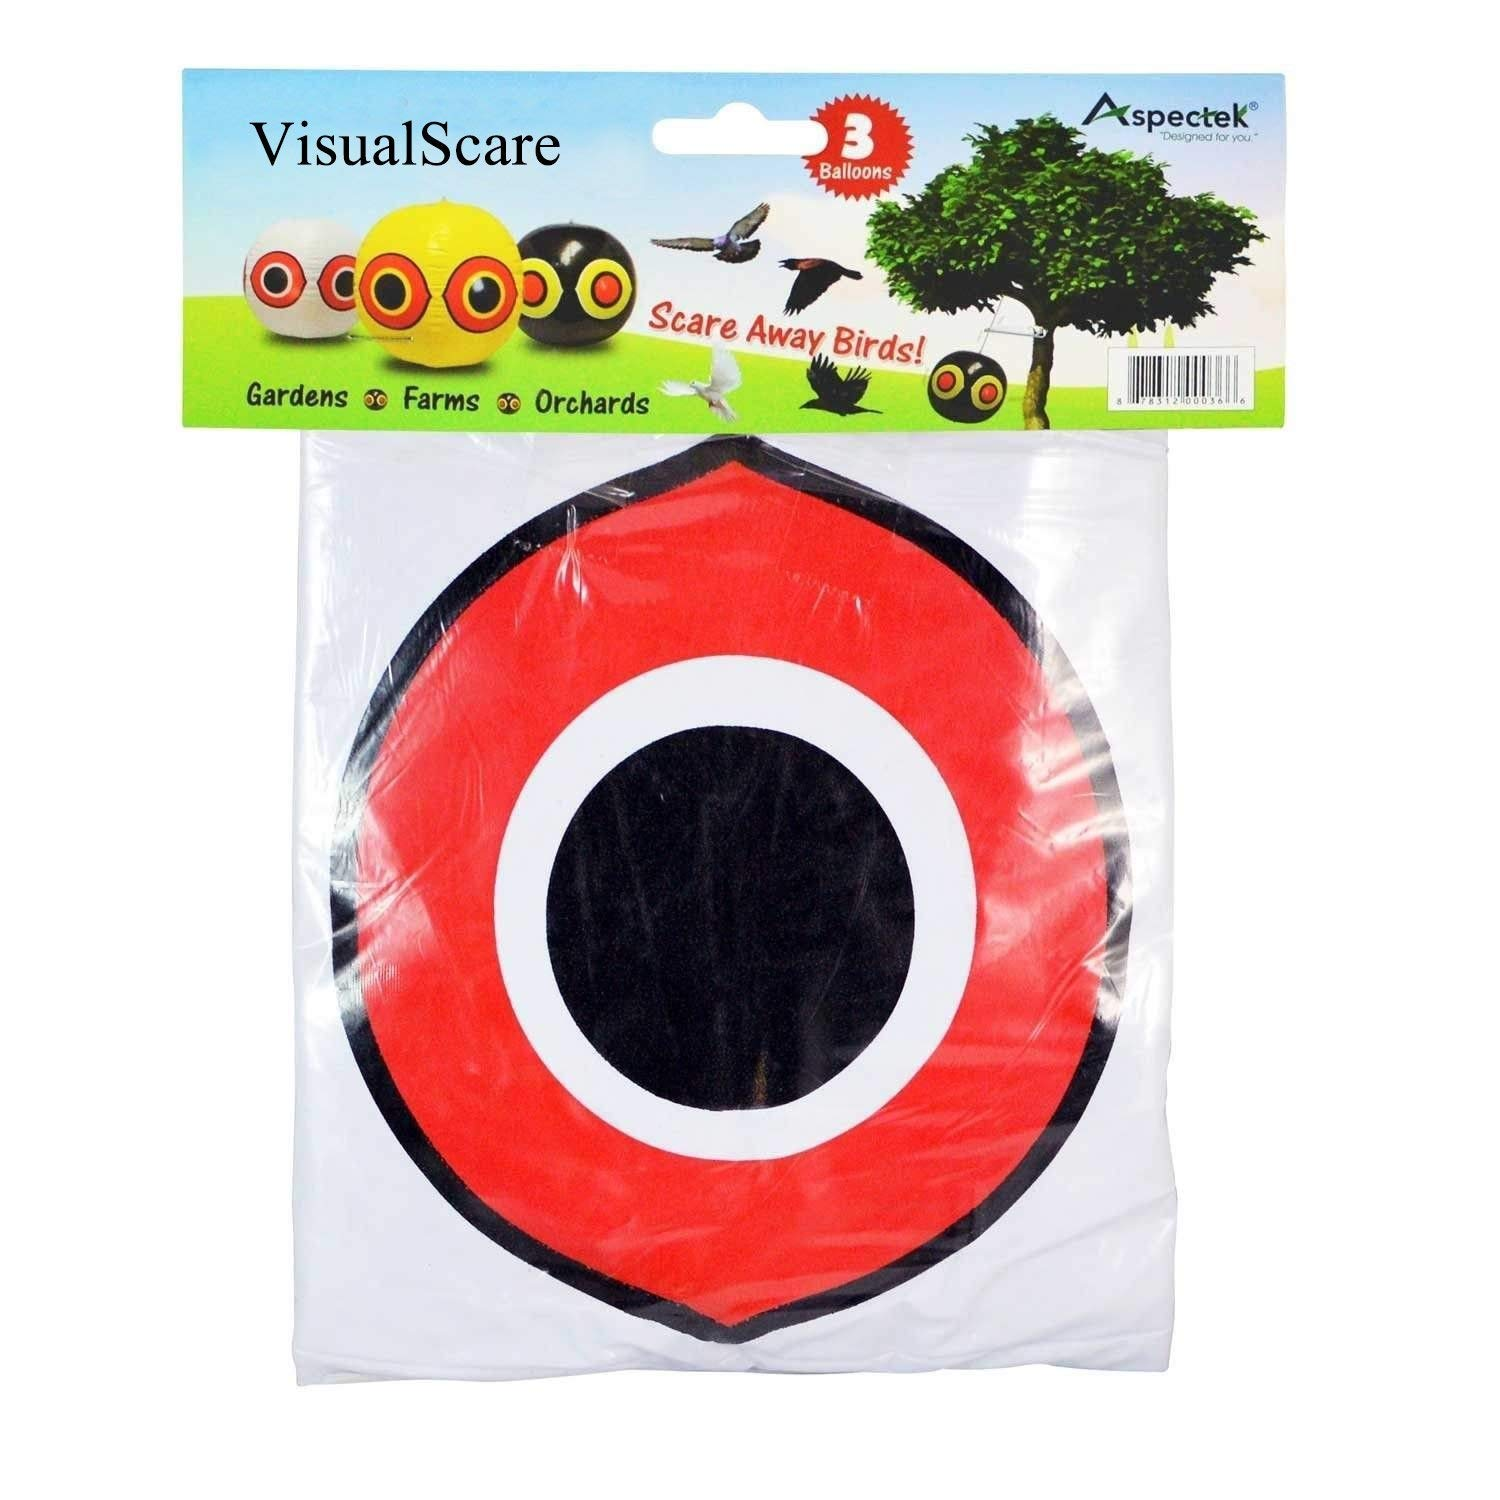 Aspectek Bird Repellent Scary Eye Balloons: Stops Pest Bird Problems Fast. Reliable Visual Deterrent: Secure Your Property From Damage/Mess. Ward off Woodpecker, Pigeons, Sparrows. 100% Moneyback Guaranteed HR494